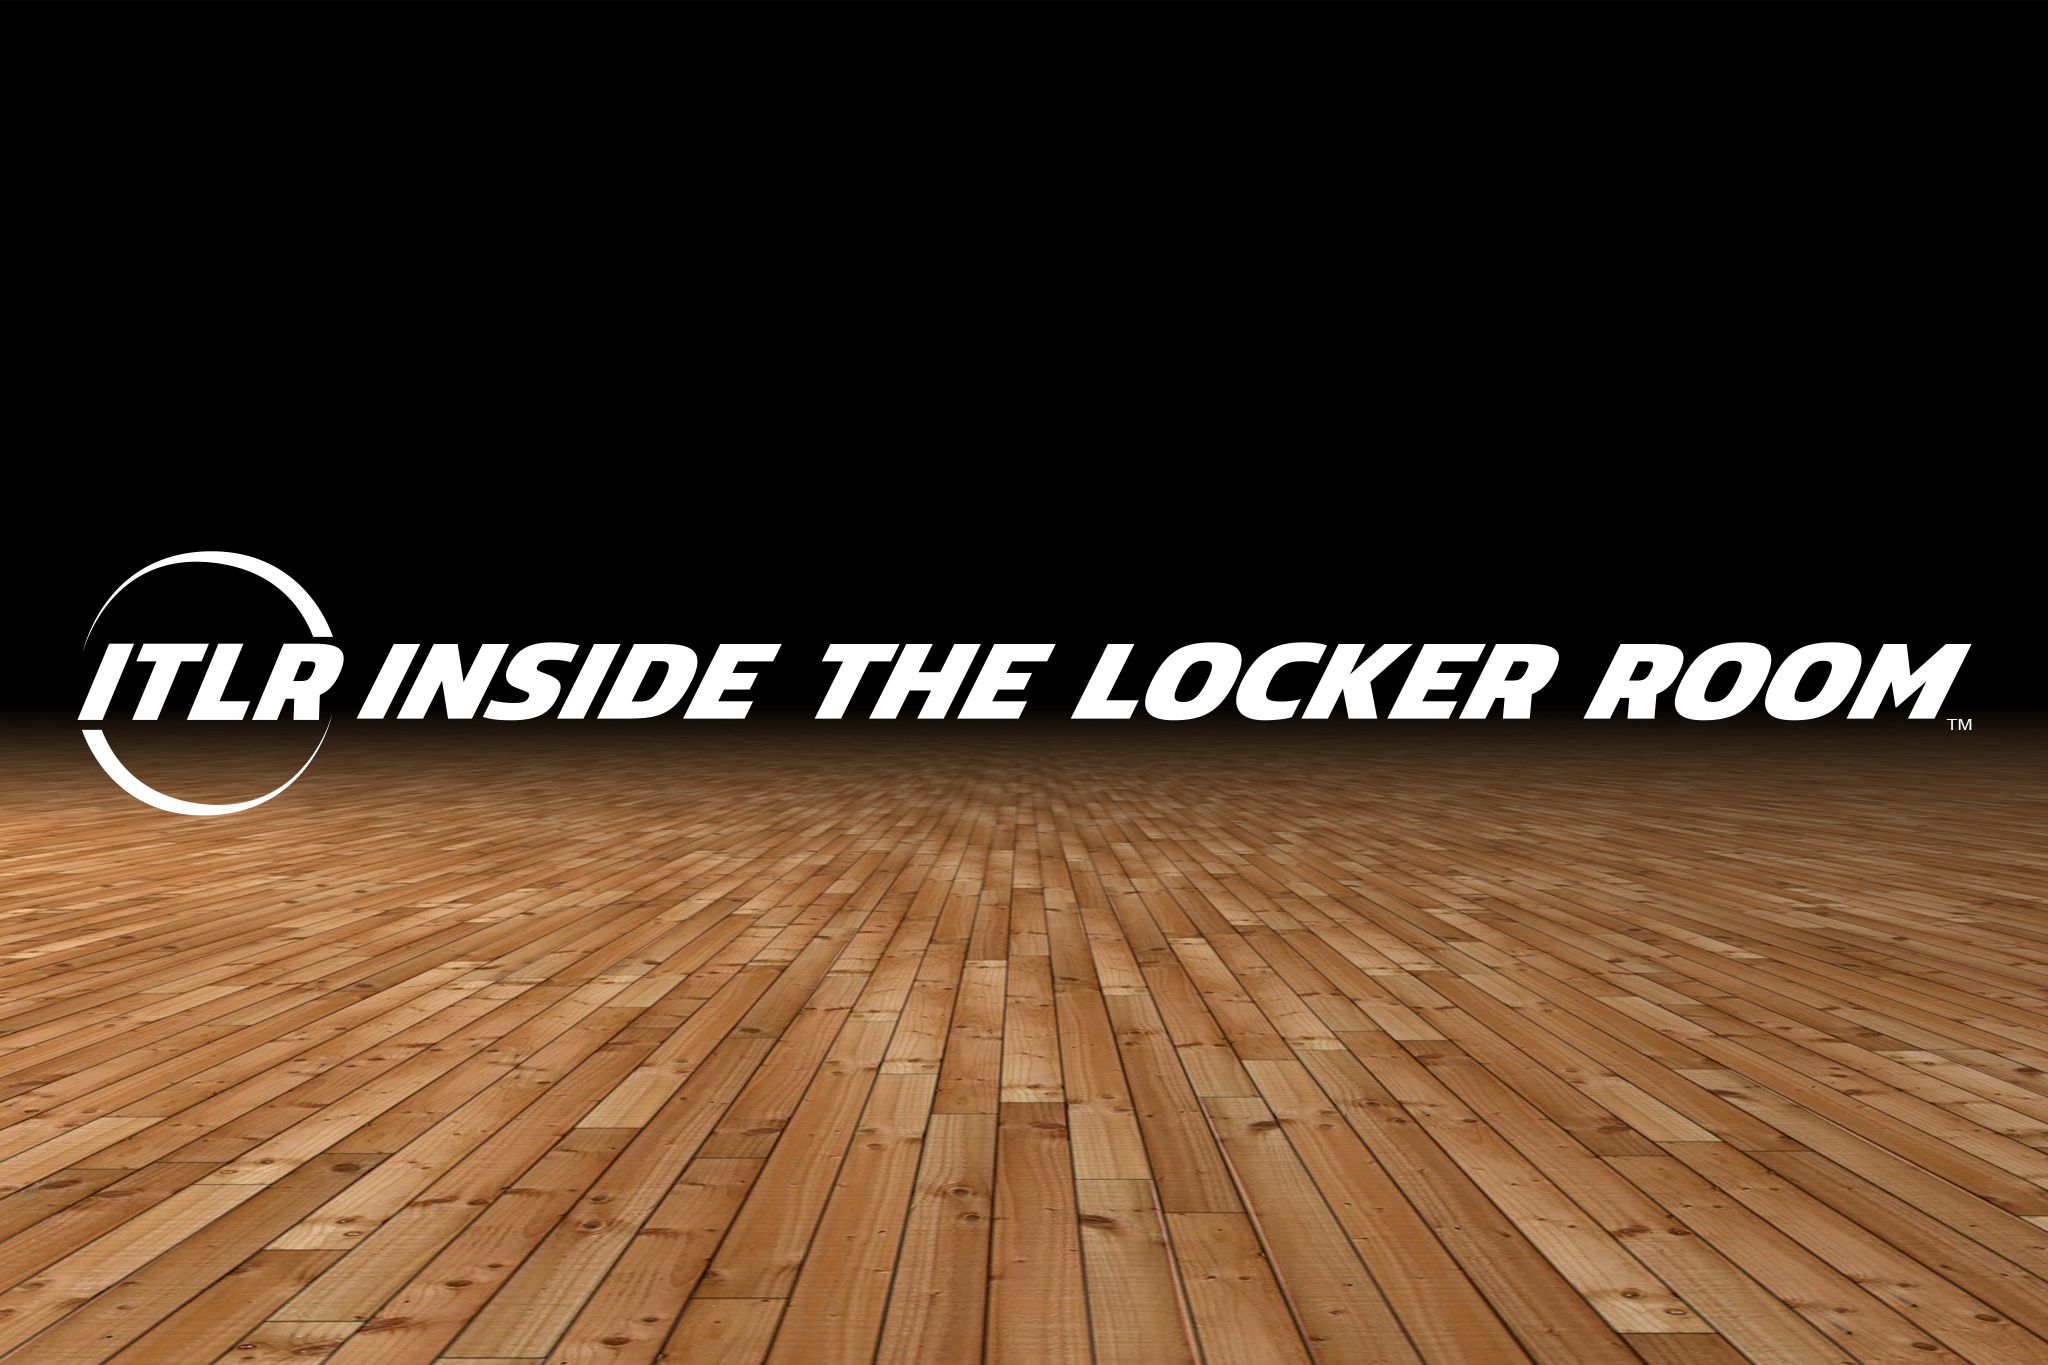 Basketball_Inside the locker room_Spot